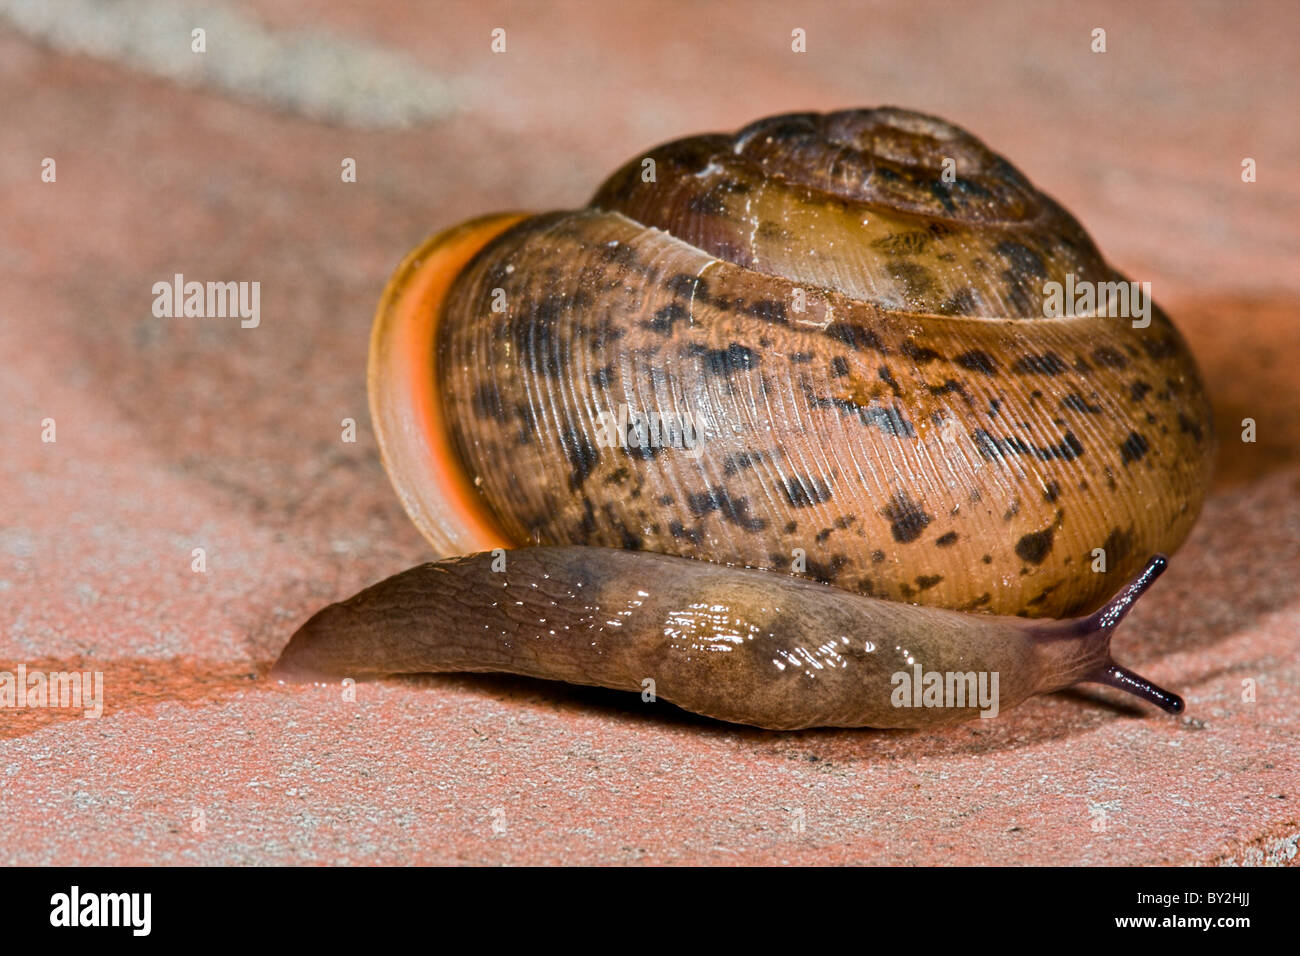 Common brown garden snail crawling on a on brick surface with slug - Stock Image